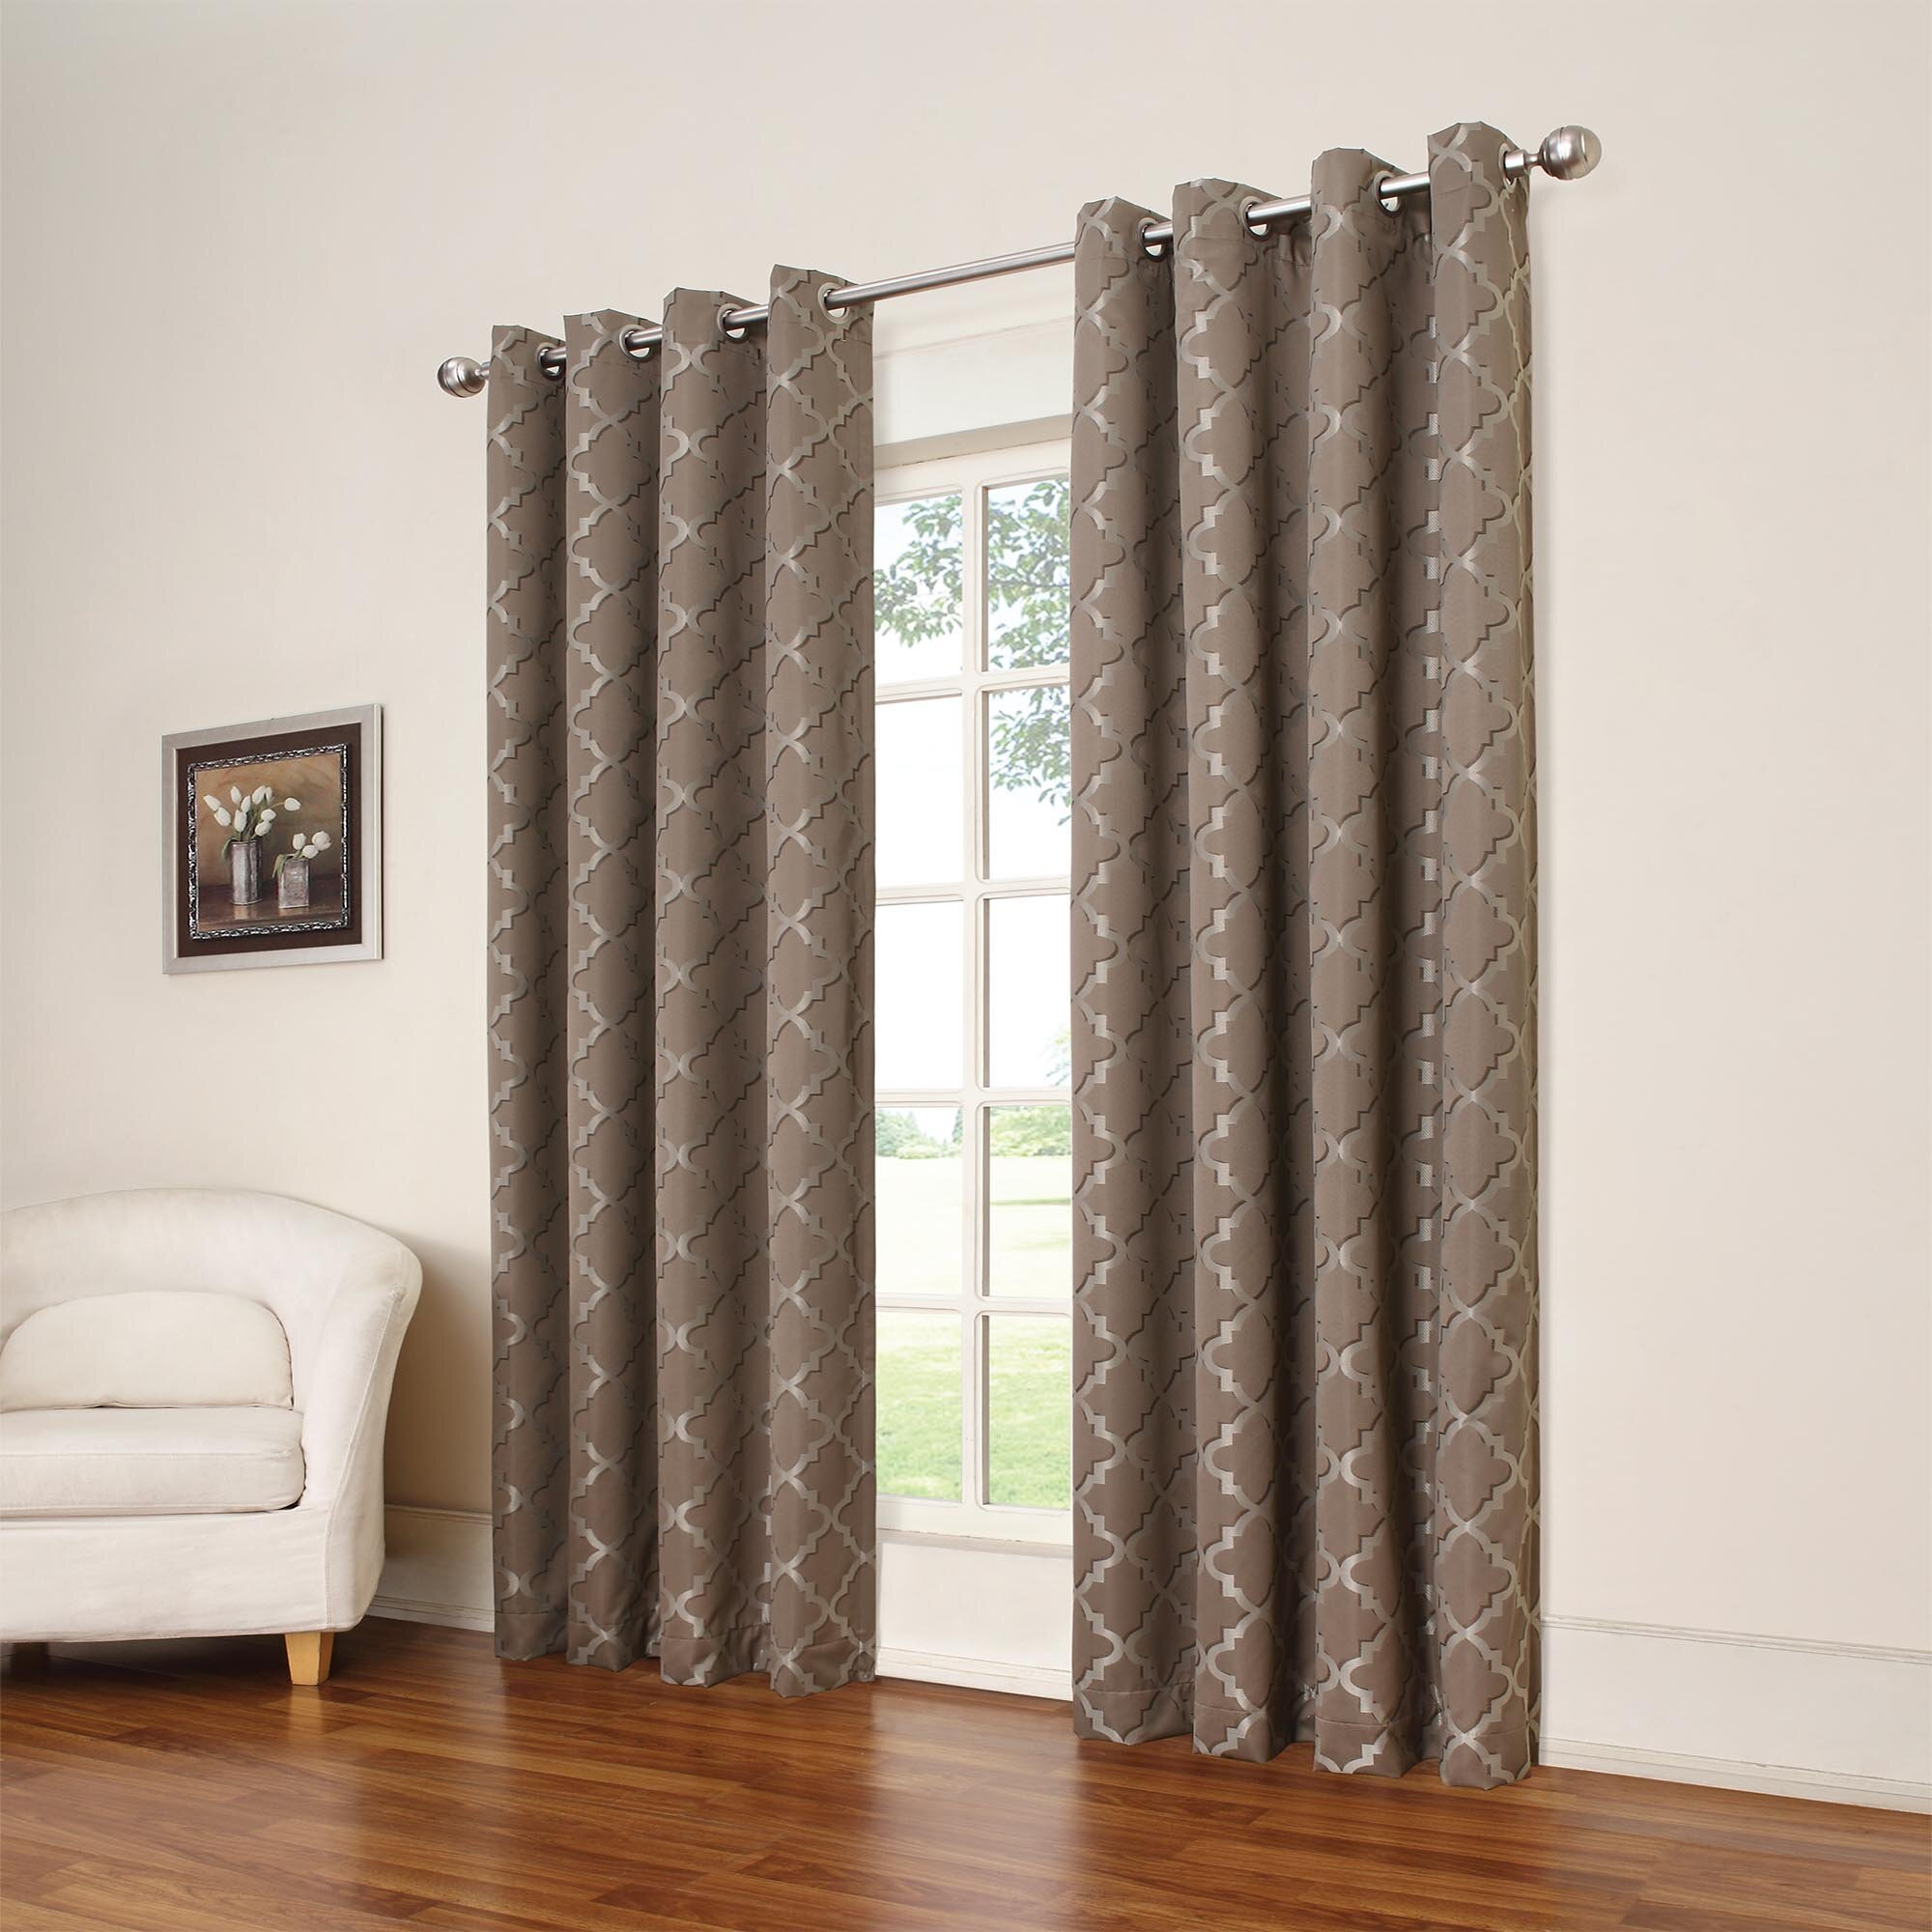 Navy curtains blackout - Quick View